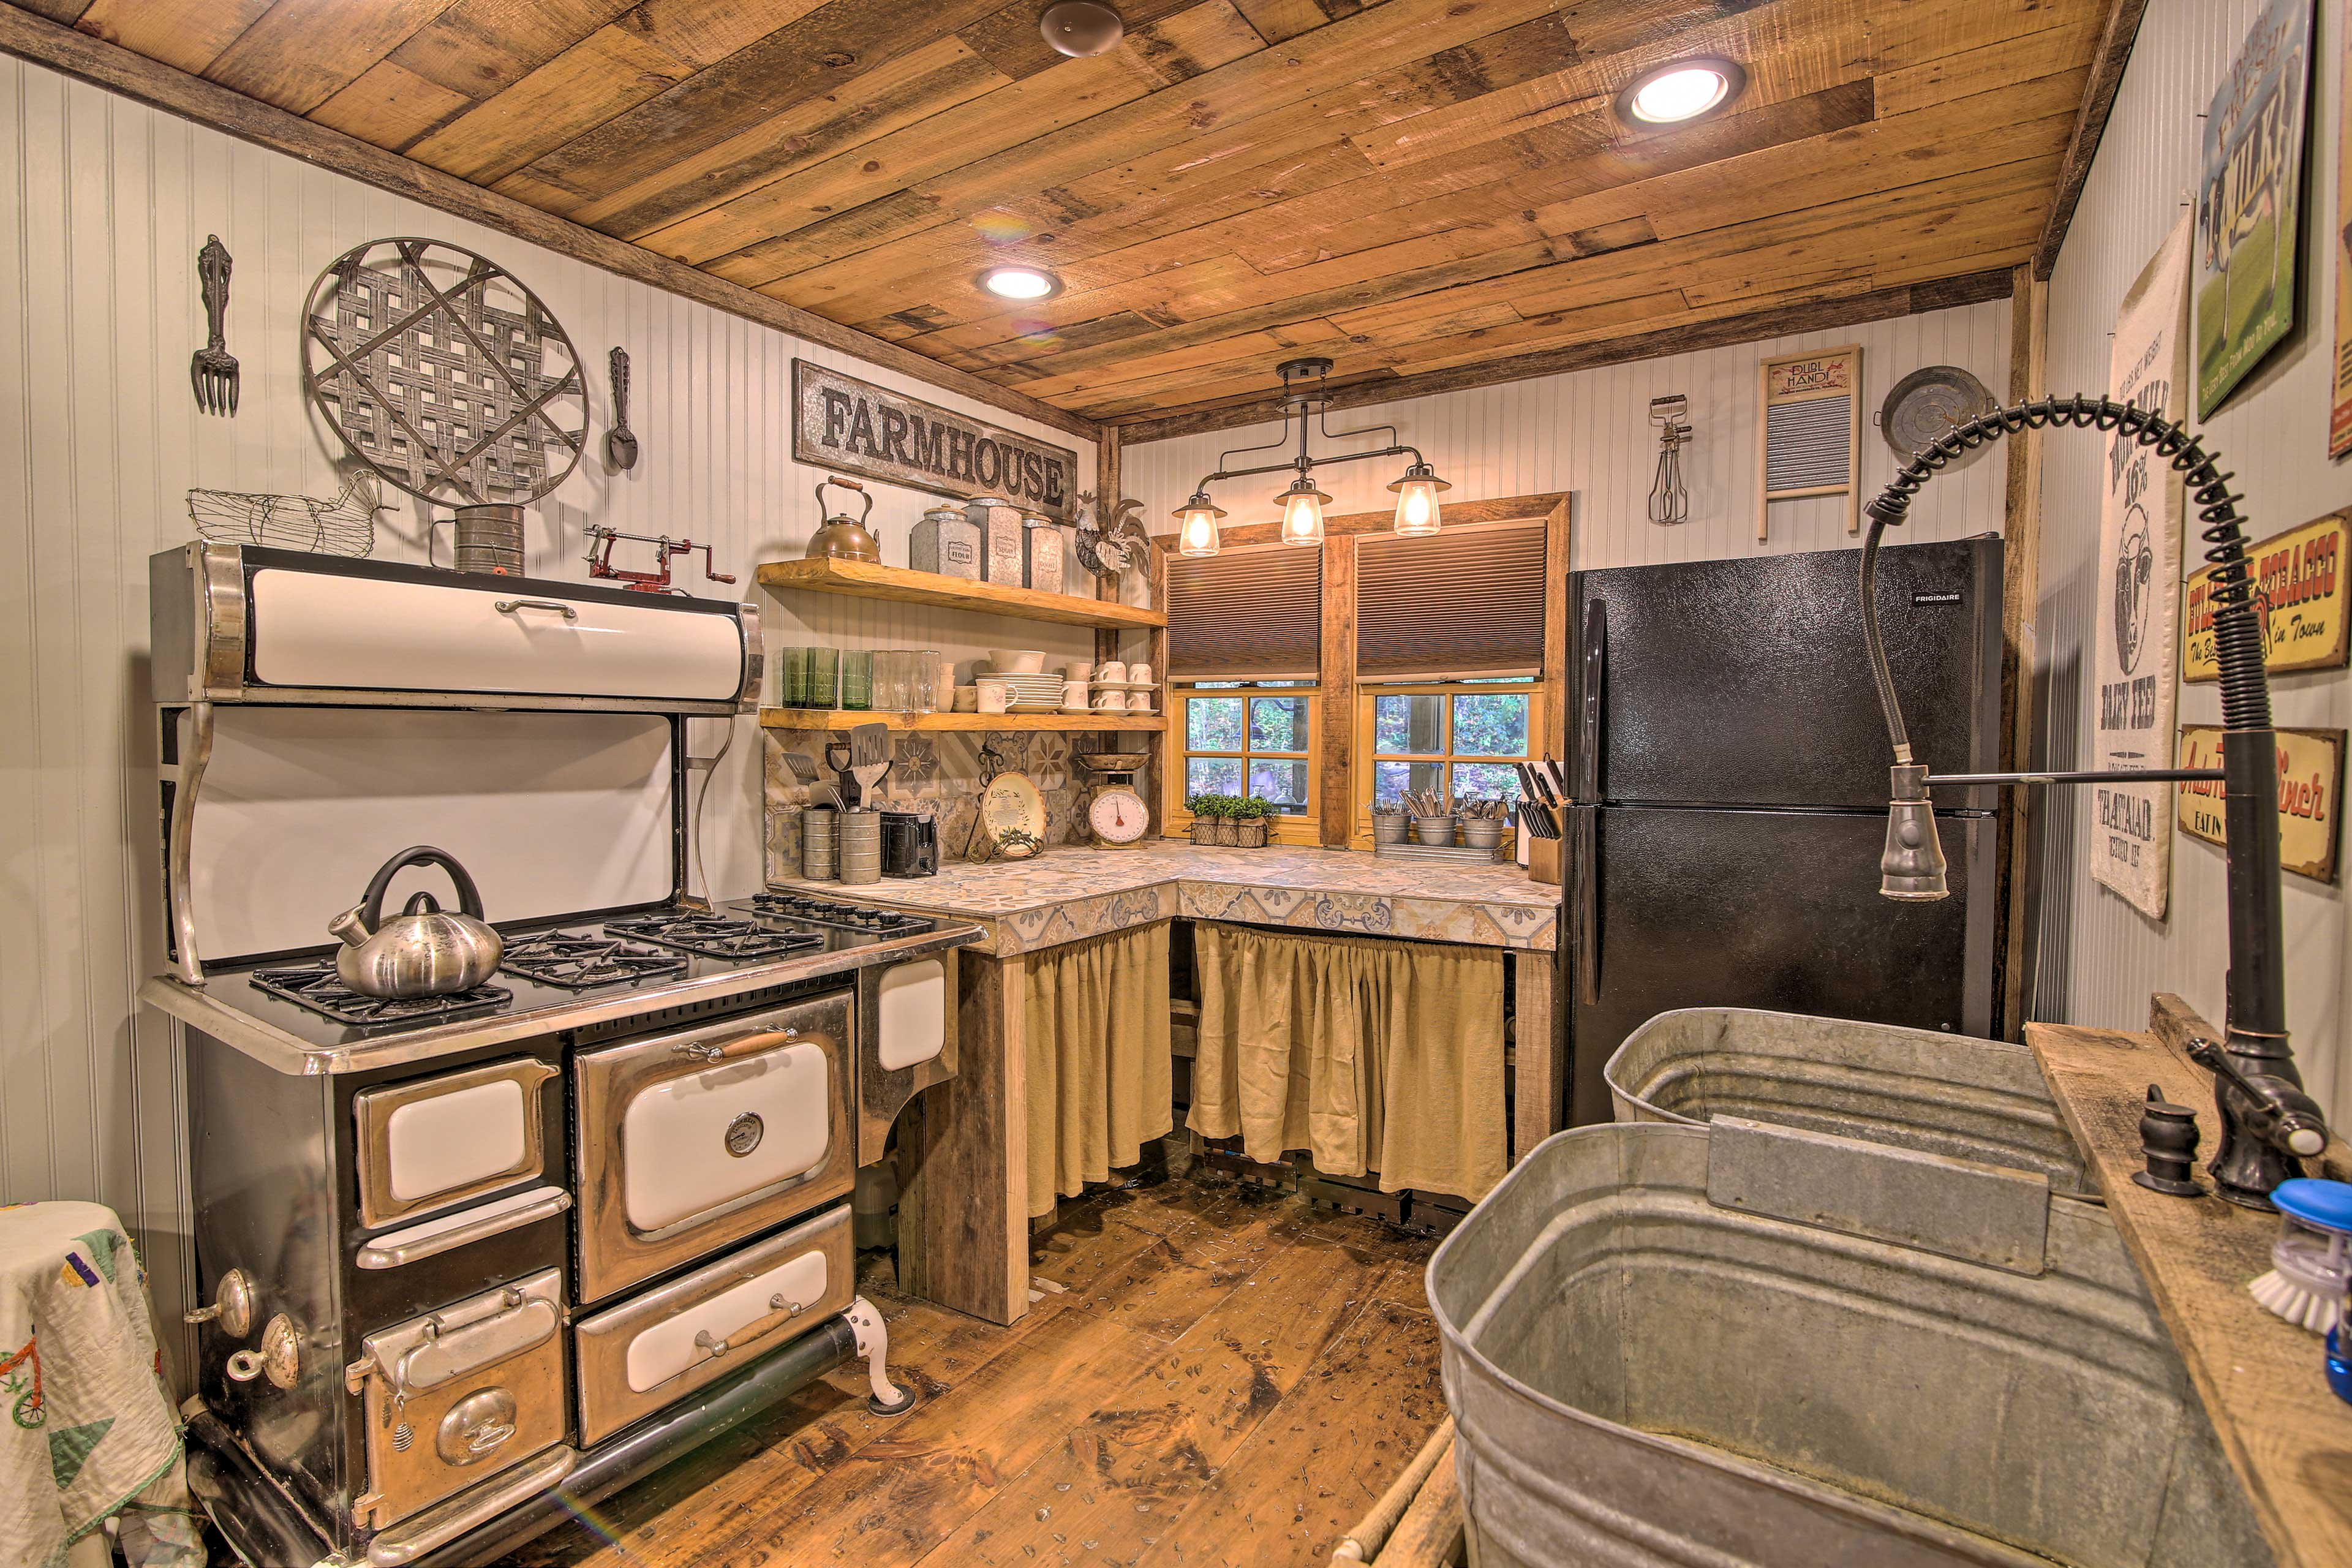 The kitchen has kitschy touches, colorful countertops, and stainless barn sinks.